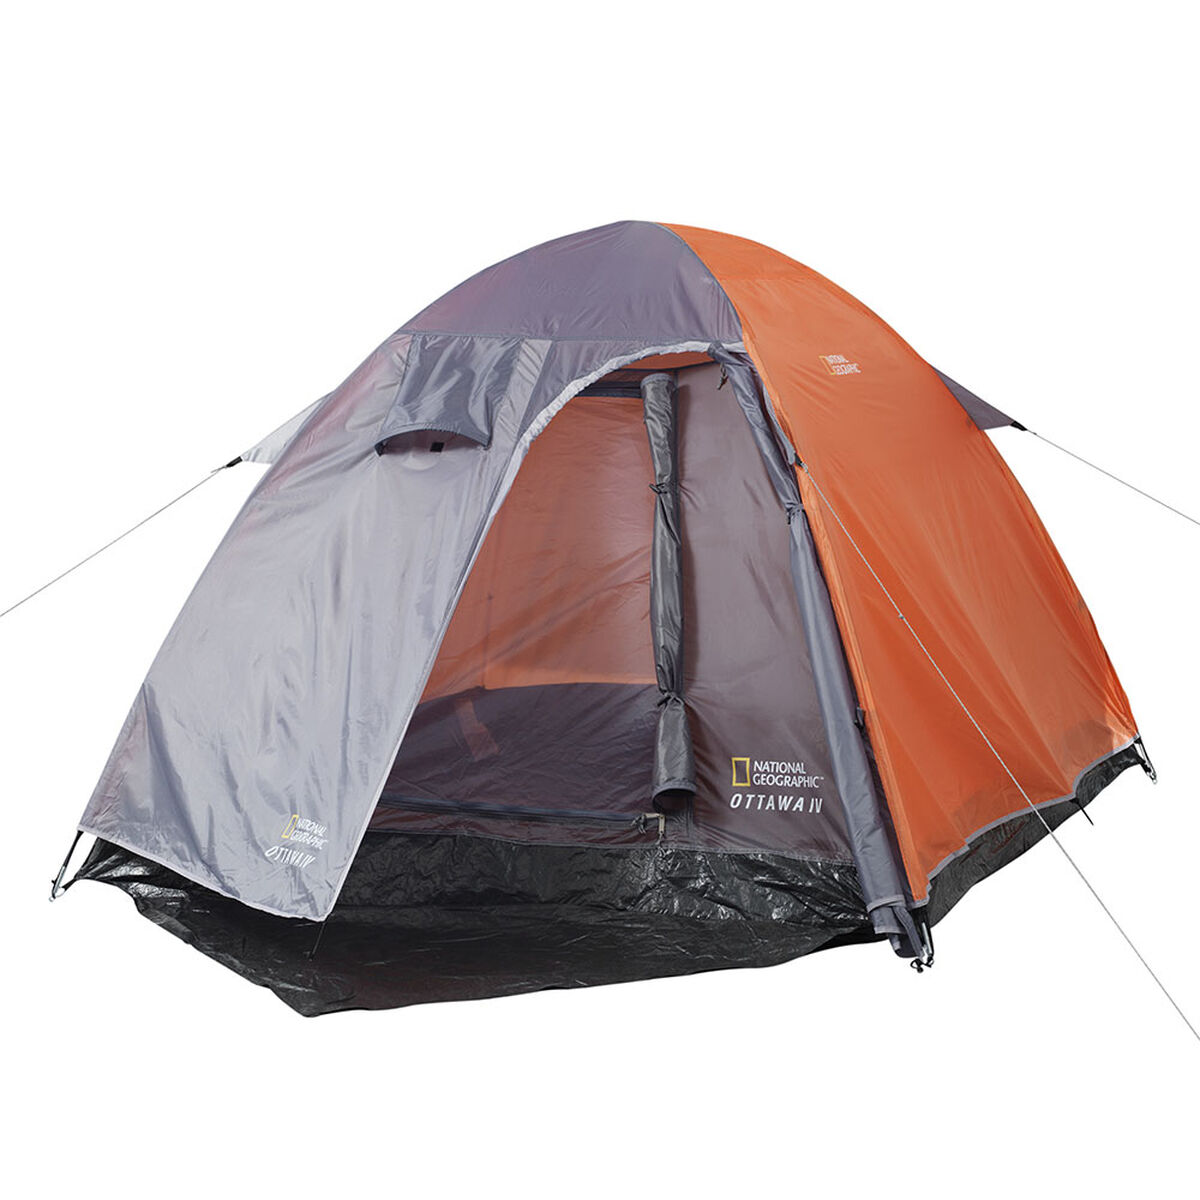 Carpa National Geographic Ottawa 4 Personas